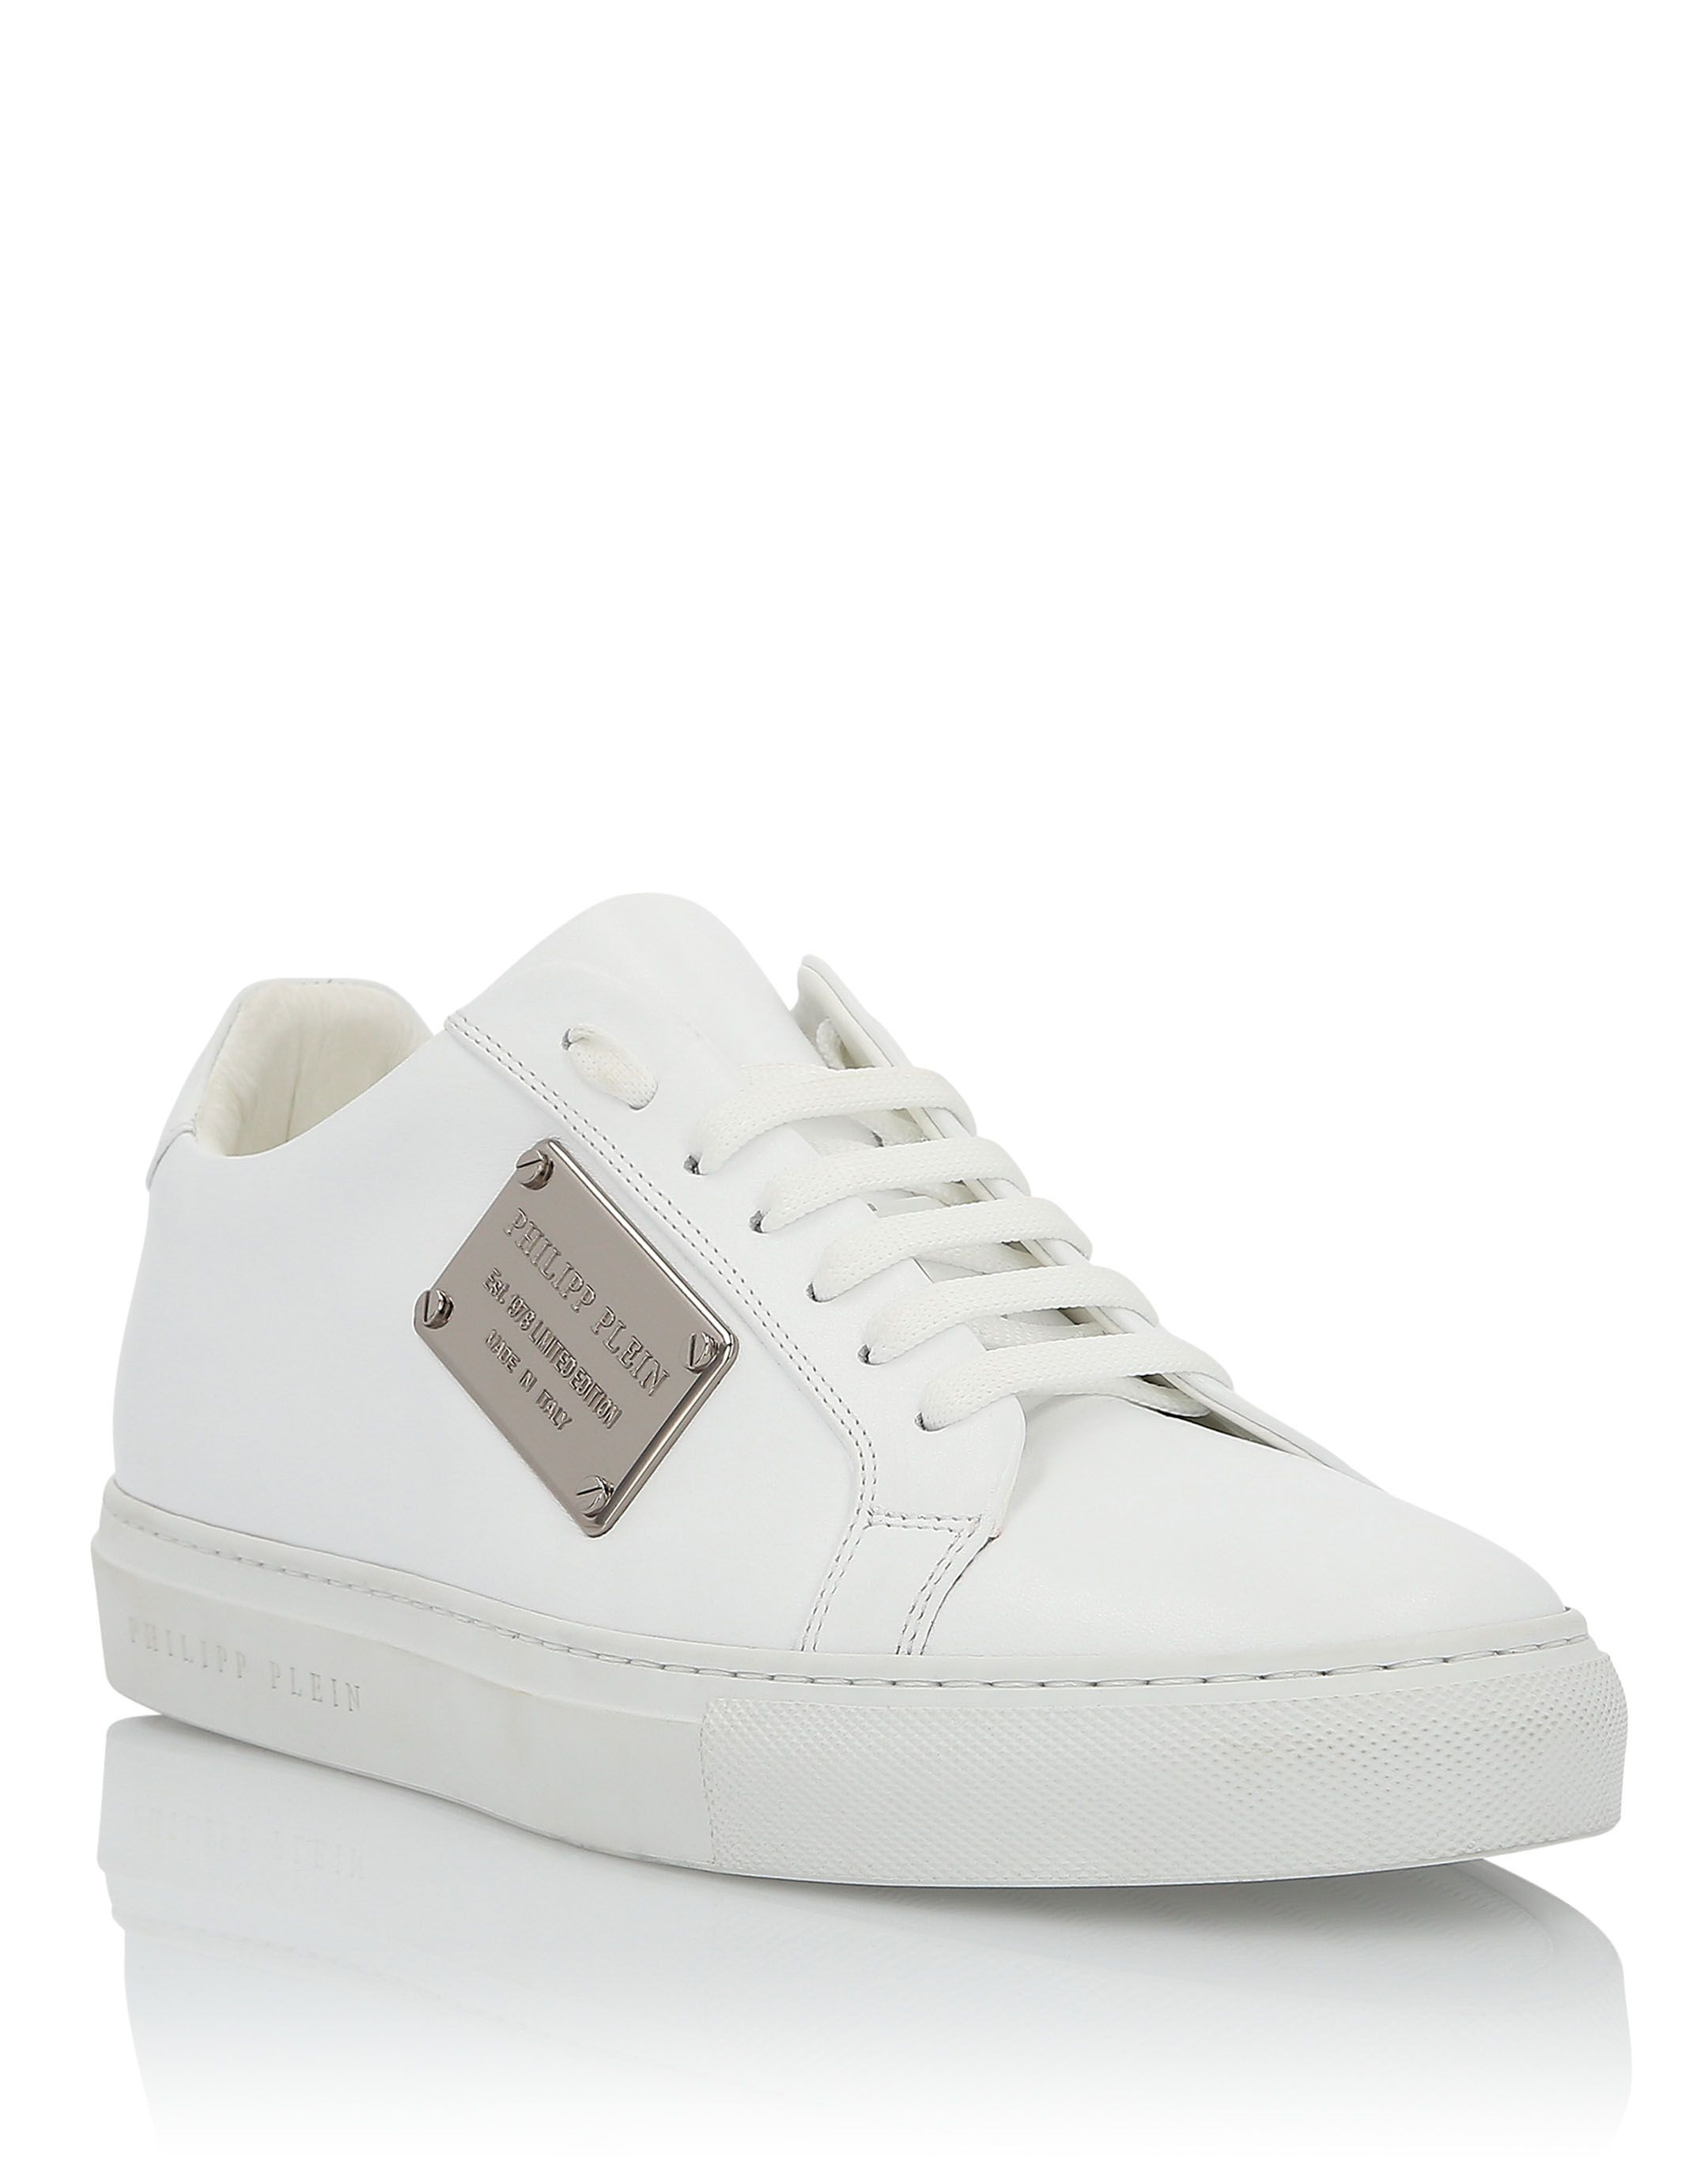 PHILIPP PLEIN LO TOP SNEAKERS FERDY. #philippplein #shoes